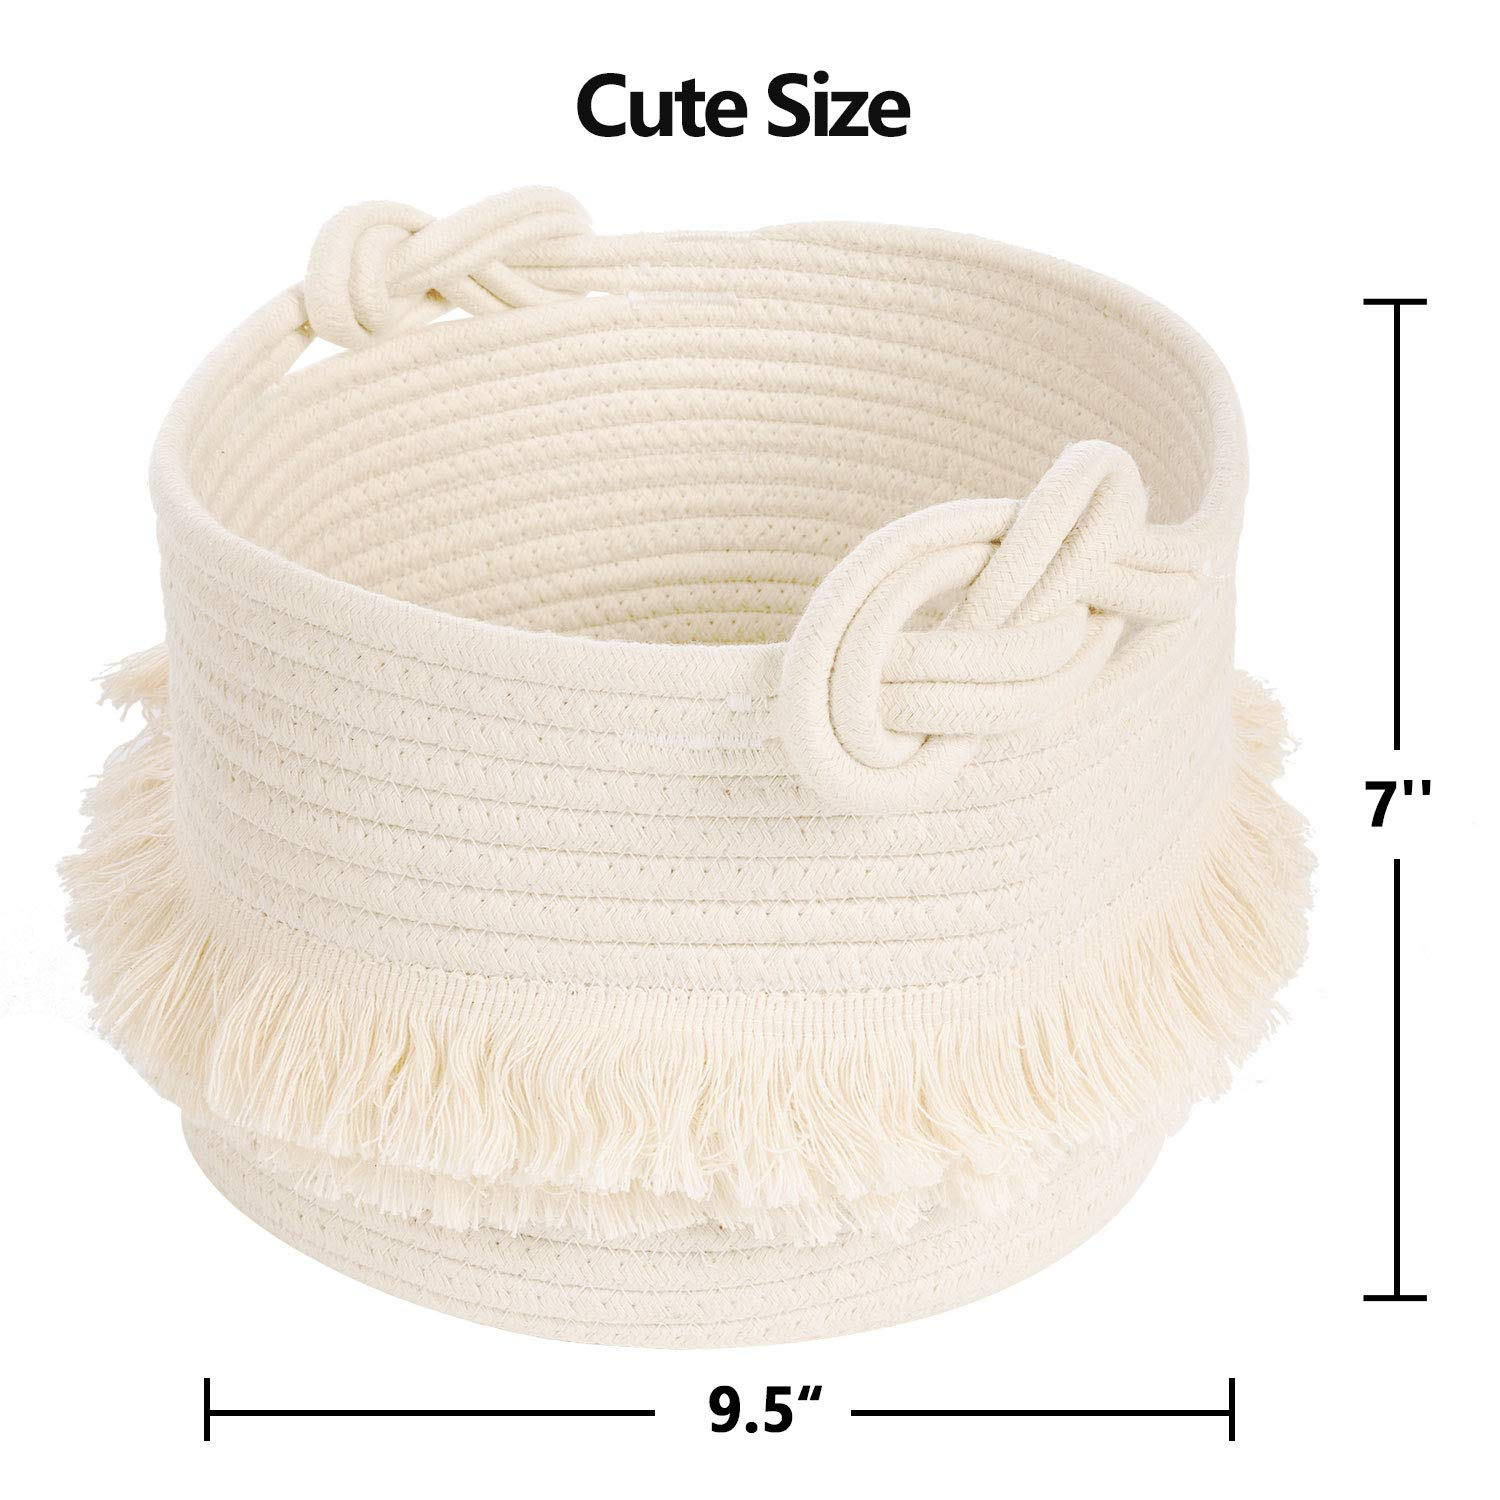 Home Storage Container Cute Tassel Nursery Decor Small Woven Storage Baskets Cotton Rope Decorative Hamper for Diaper 9.5/'/' x 7/'/' Blankets Magazine and Keys 9.5 x 7 Cute Tassel Nursery Decor Home Storage Container